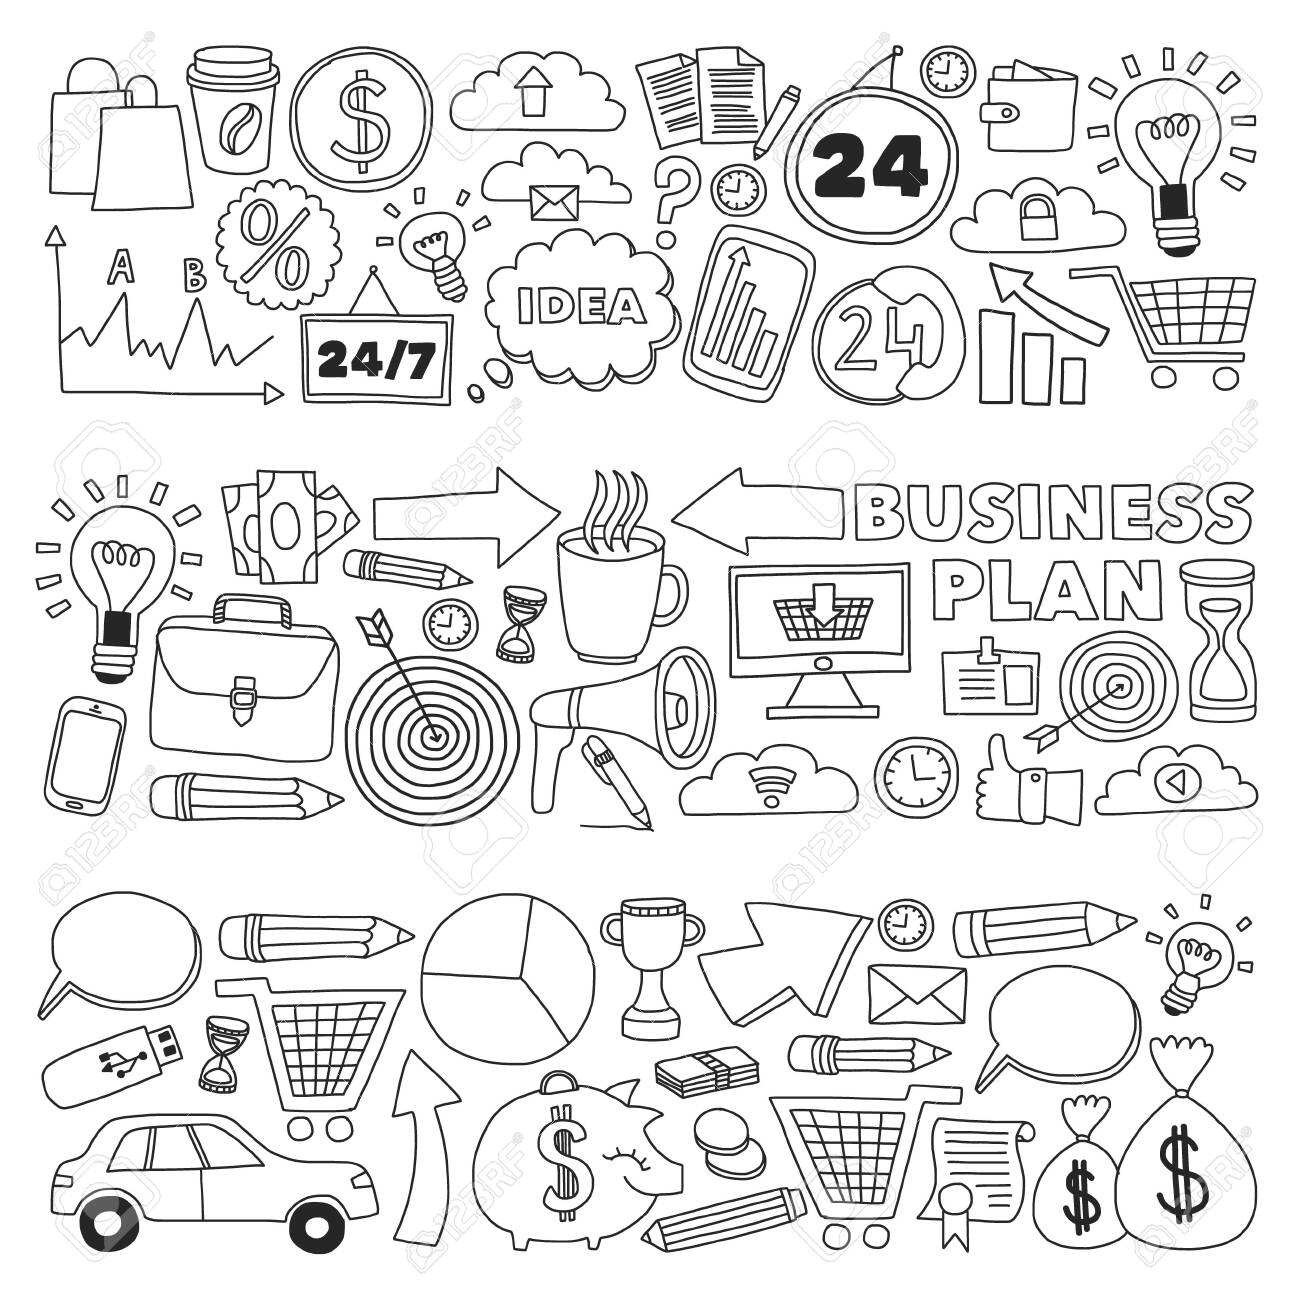 Business and management background. Pattern with finance icons. Conceptual illustration of projects organization, risk, development. Team working, budget planning. - 140276989